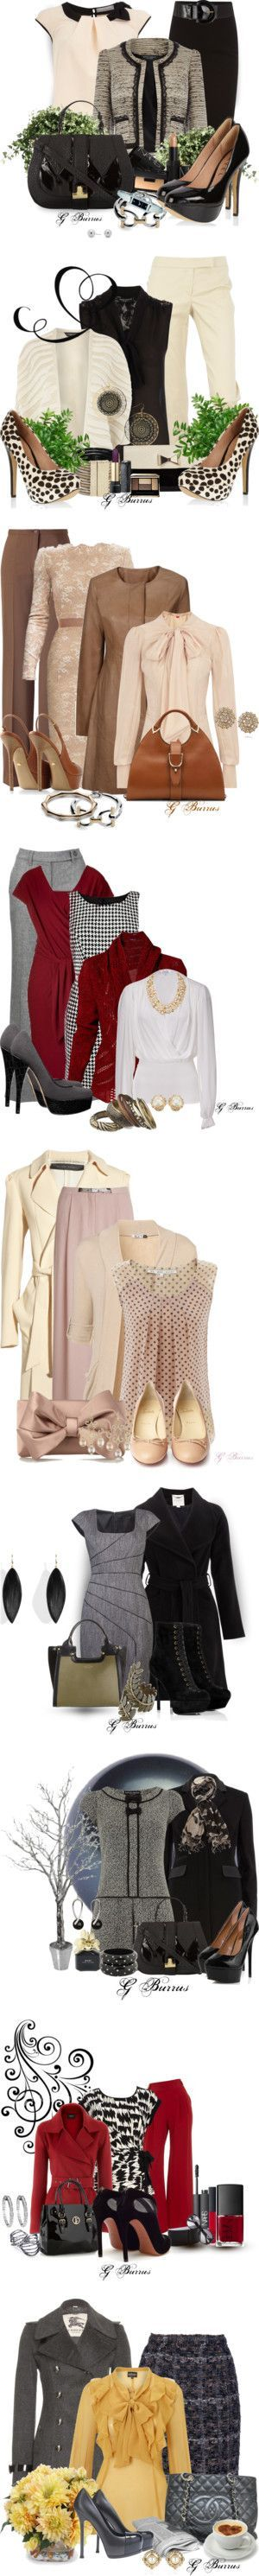 """""""Business Attire."""" by gaburrus ❤ liked on Polyvore"""